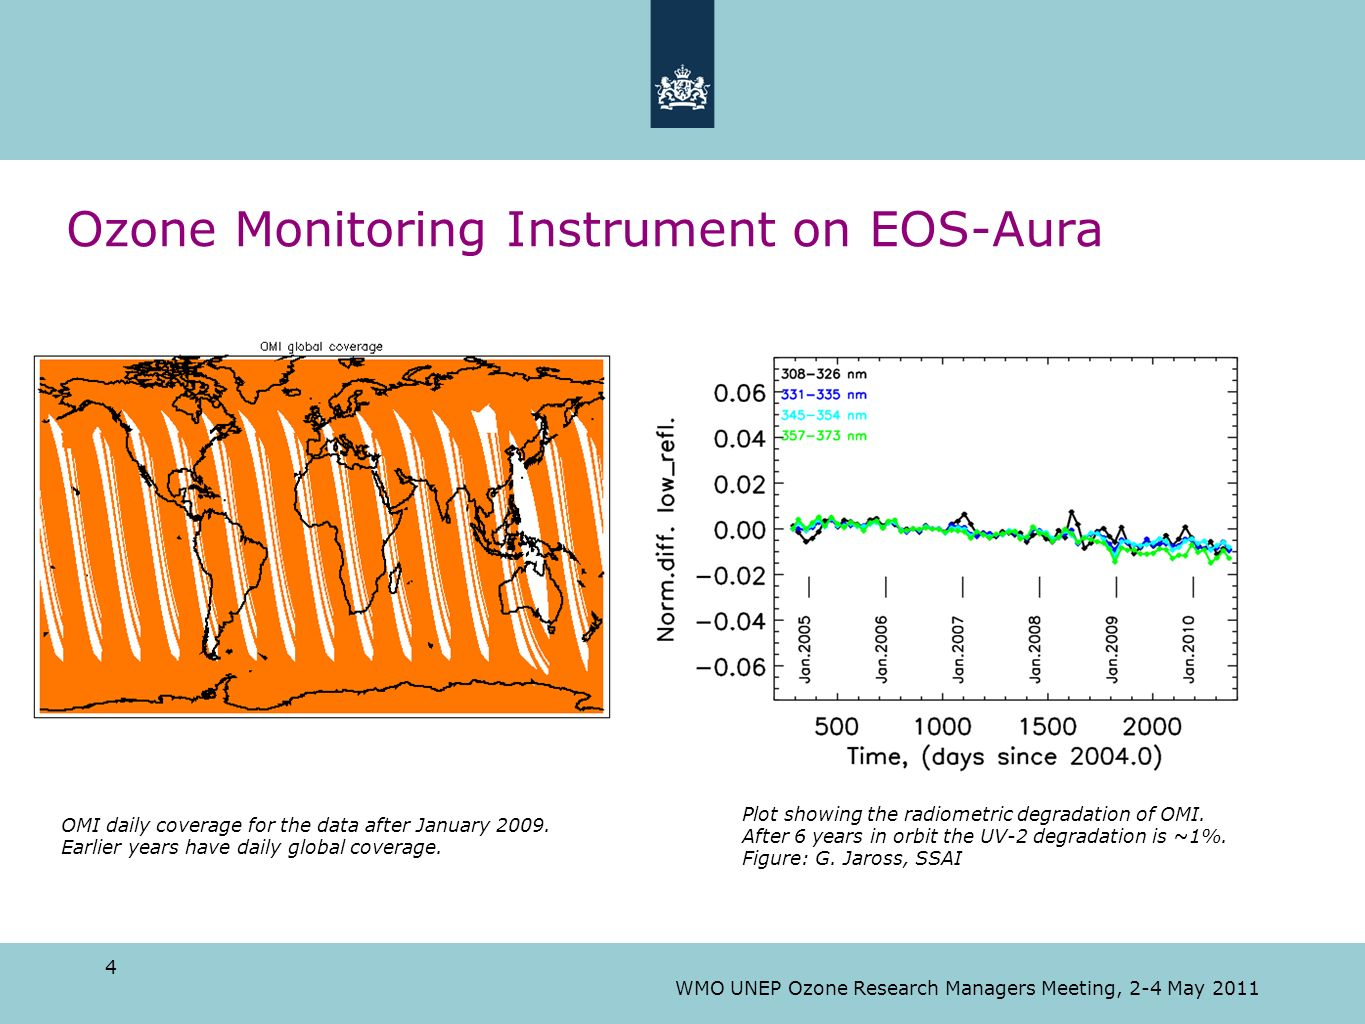 4 WMO UNEP Ozone Research Managers Meeting, 2-4 May 2011 Ozone Monitoring Instrument on EOS-Aura 4 Plot showing the radiometric degradation of OMI. Af